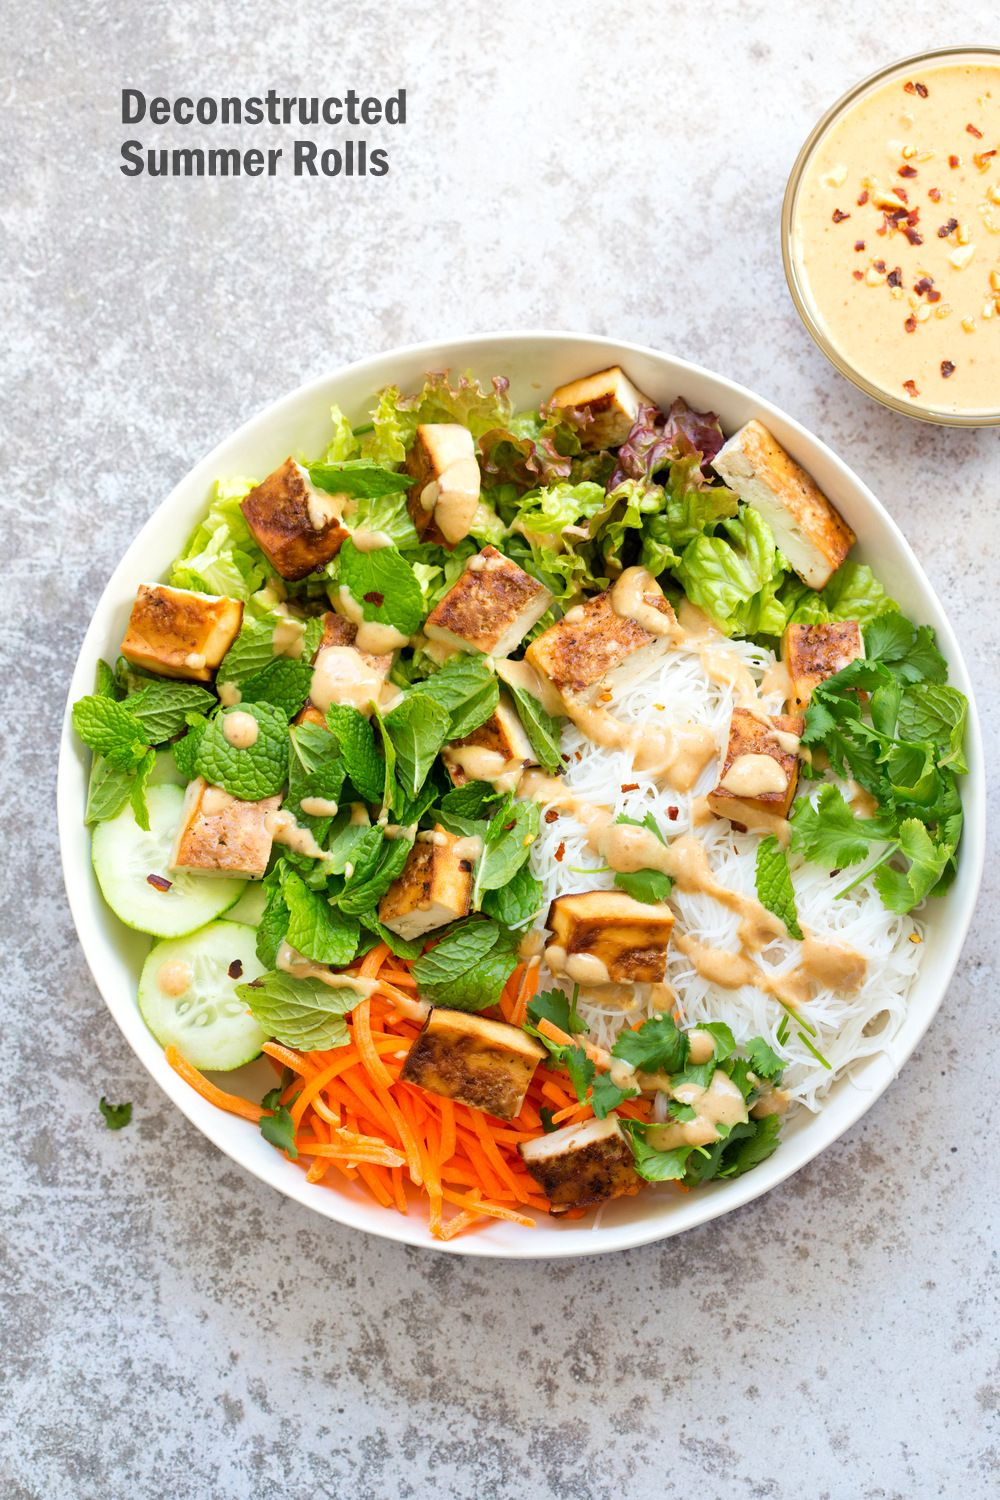 Deconstructed Vegan Summer Rolls - Veggies Spring Rolls Crunchy Veggie Vegan Summer Rolls Deconstructed into a Bowl. Served with Peanut Butter Dipping Sauce. Fresh Spring Rolls/ Rice paper rolls in a bowl. Make a bowl, wrap or fill up rice paper wrappers. Use Sunbutter to make |